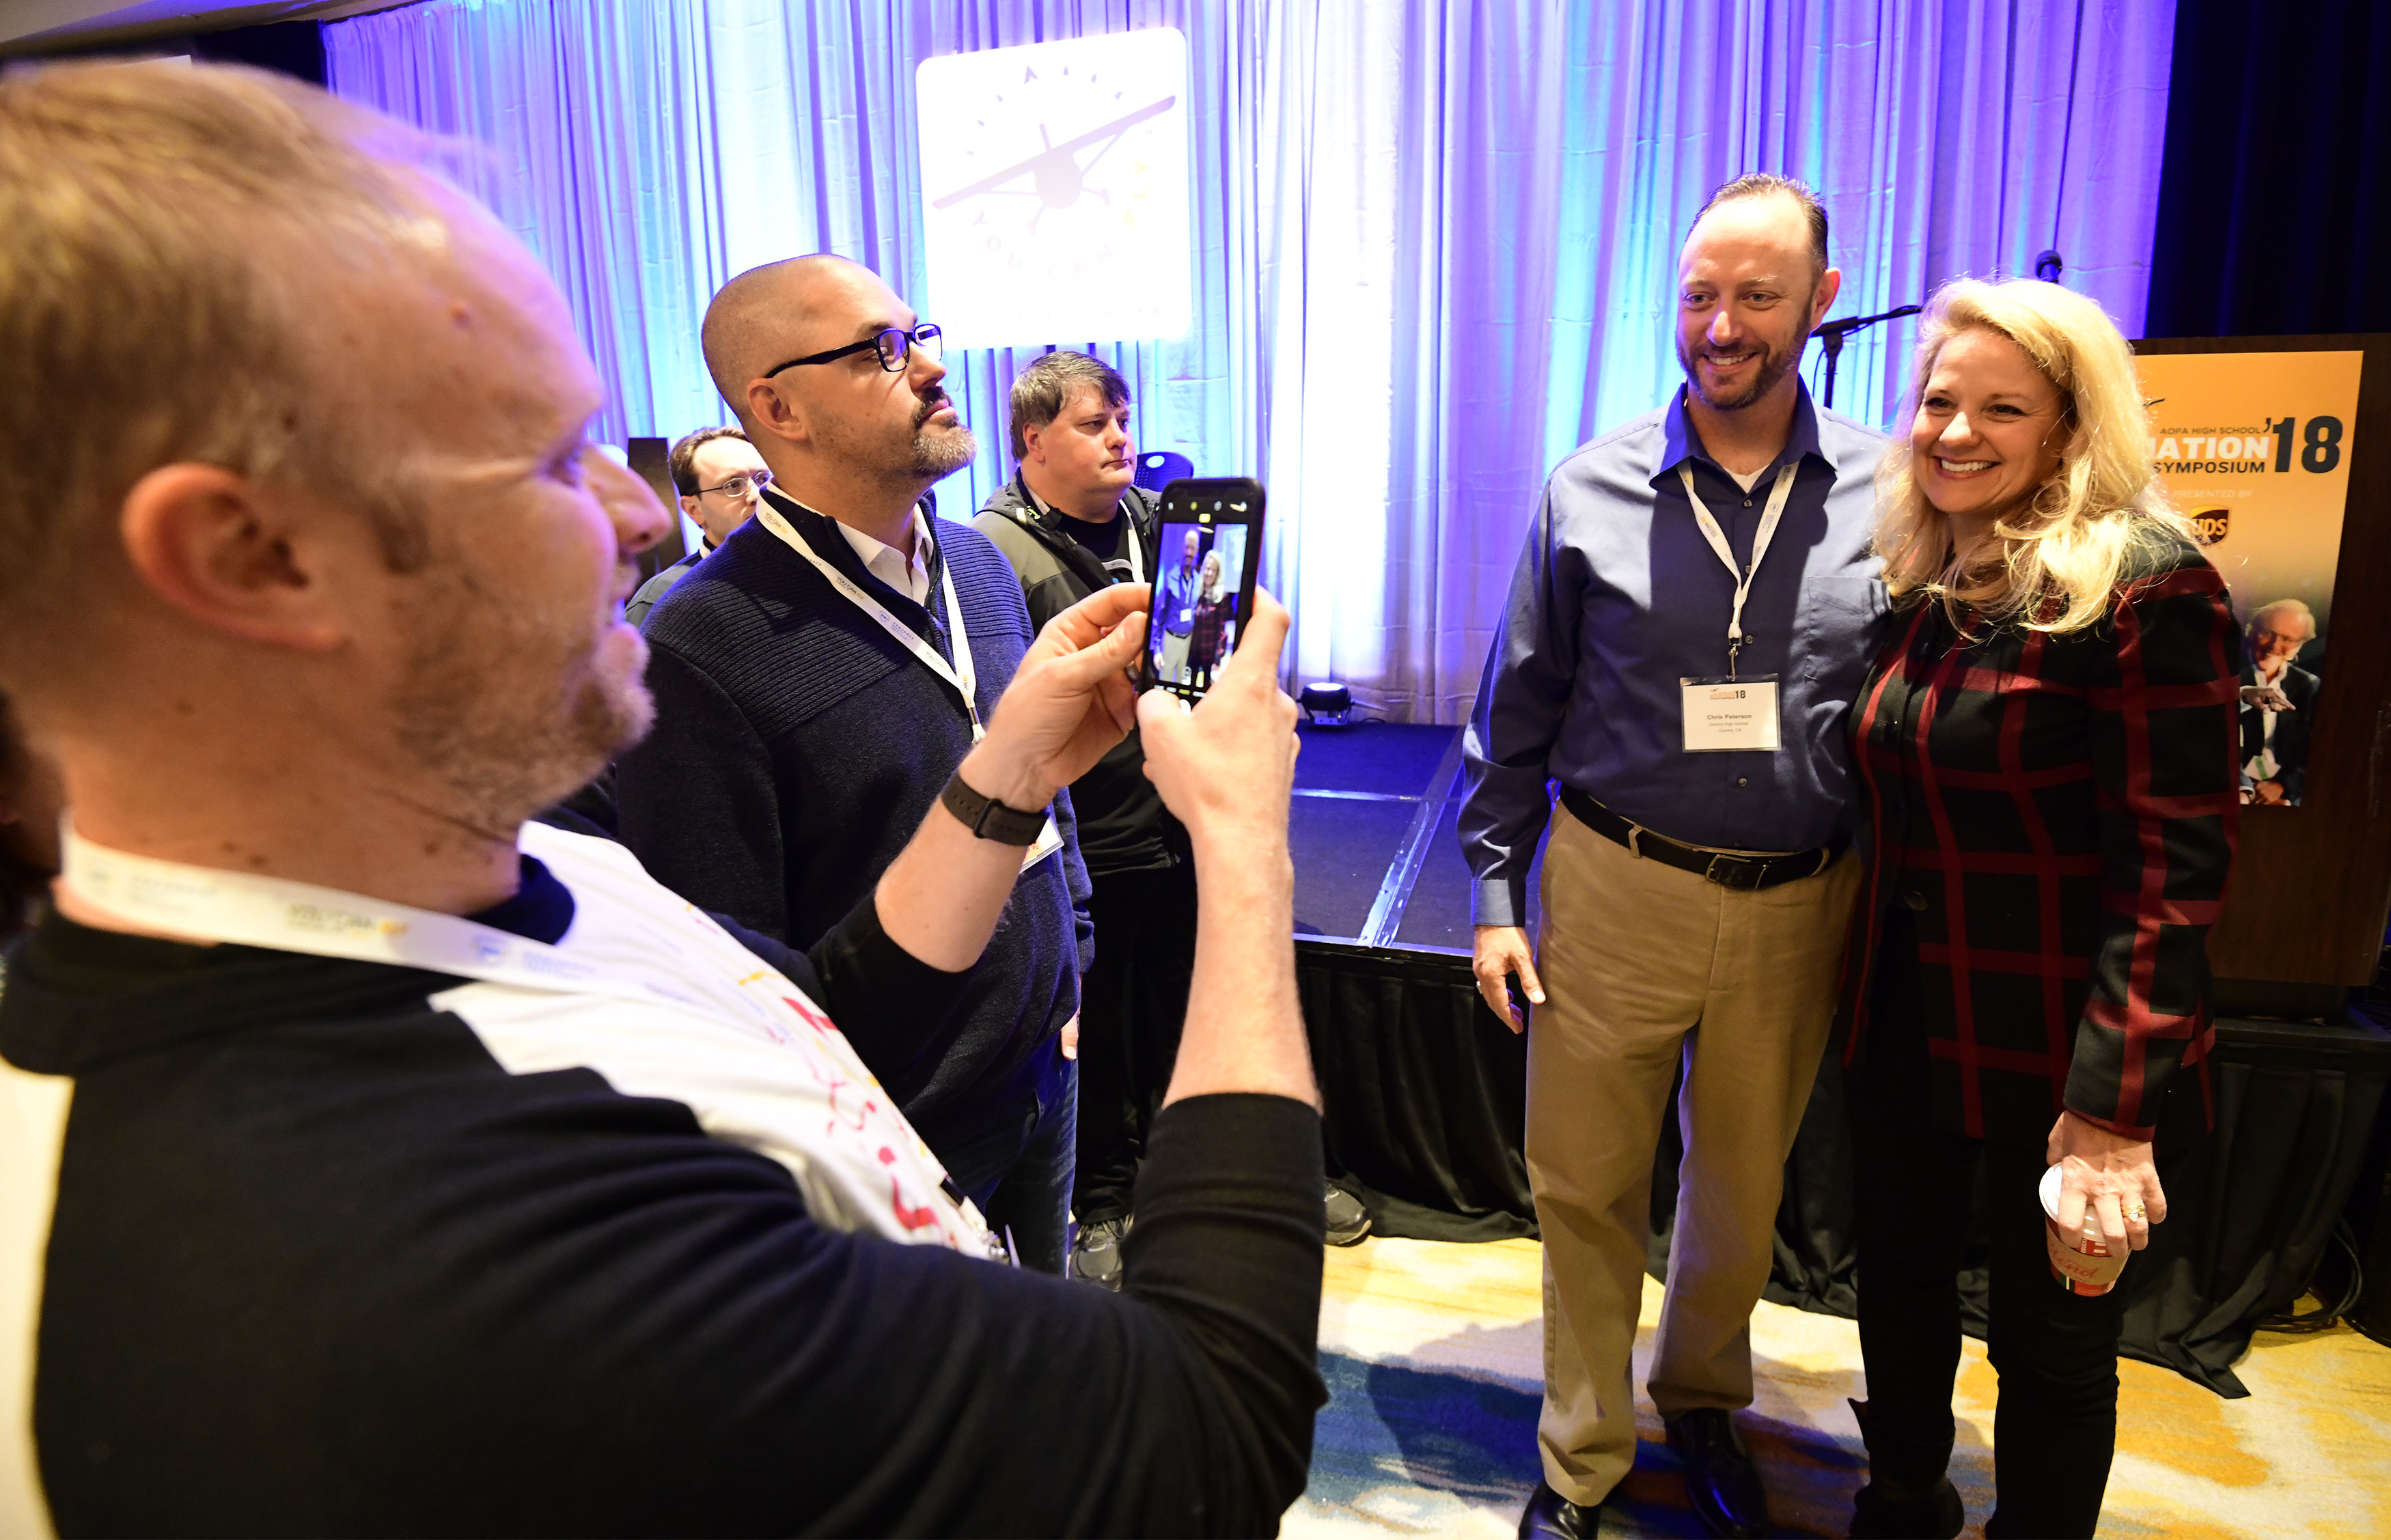 SpaceX CEO Gwynne Shotwell poses for photos after participating in a keynote during the AOPA High School Aviation STEM Symposium in Louisville, Kentucky, Nov. 6, 2018. Photo by David Tulis.